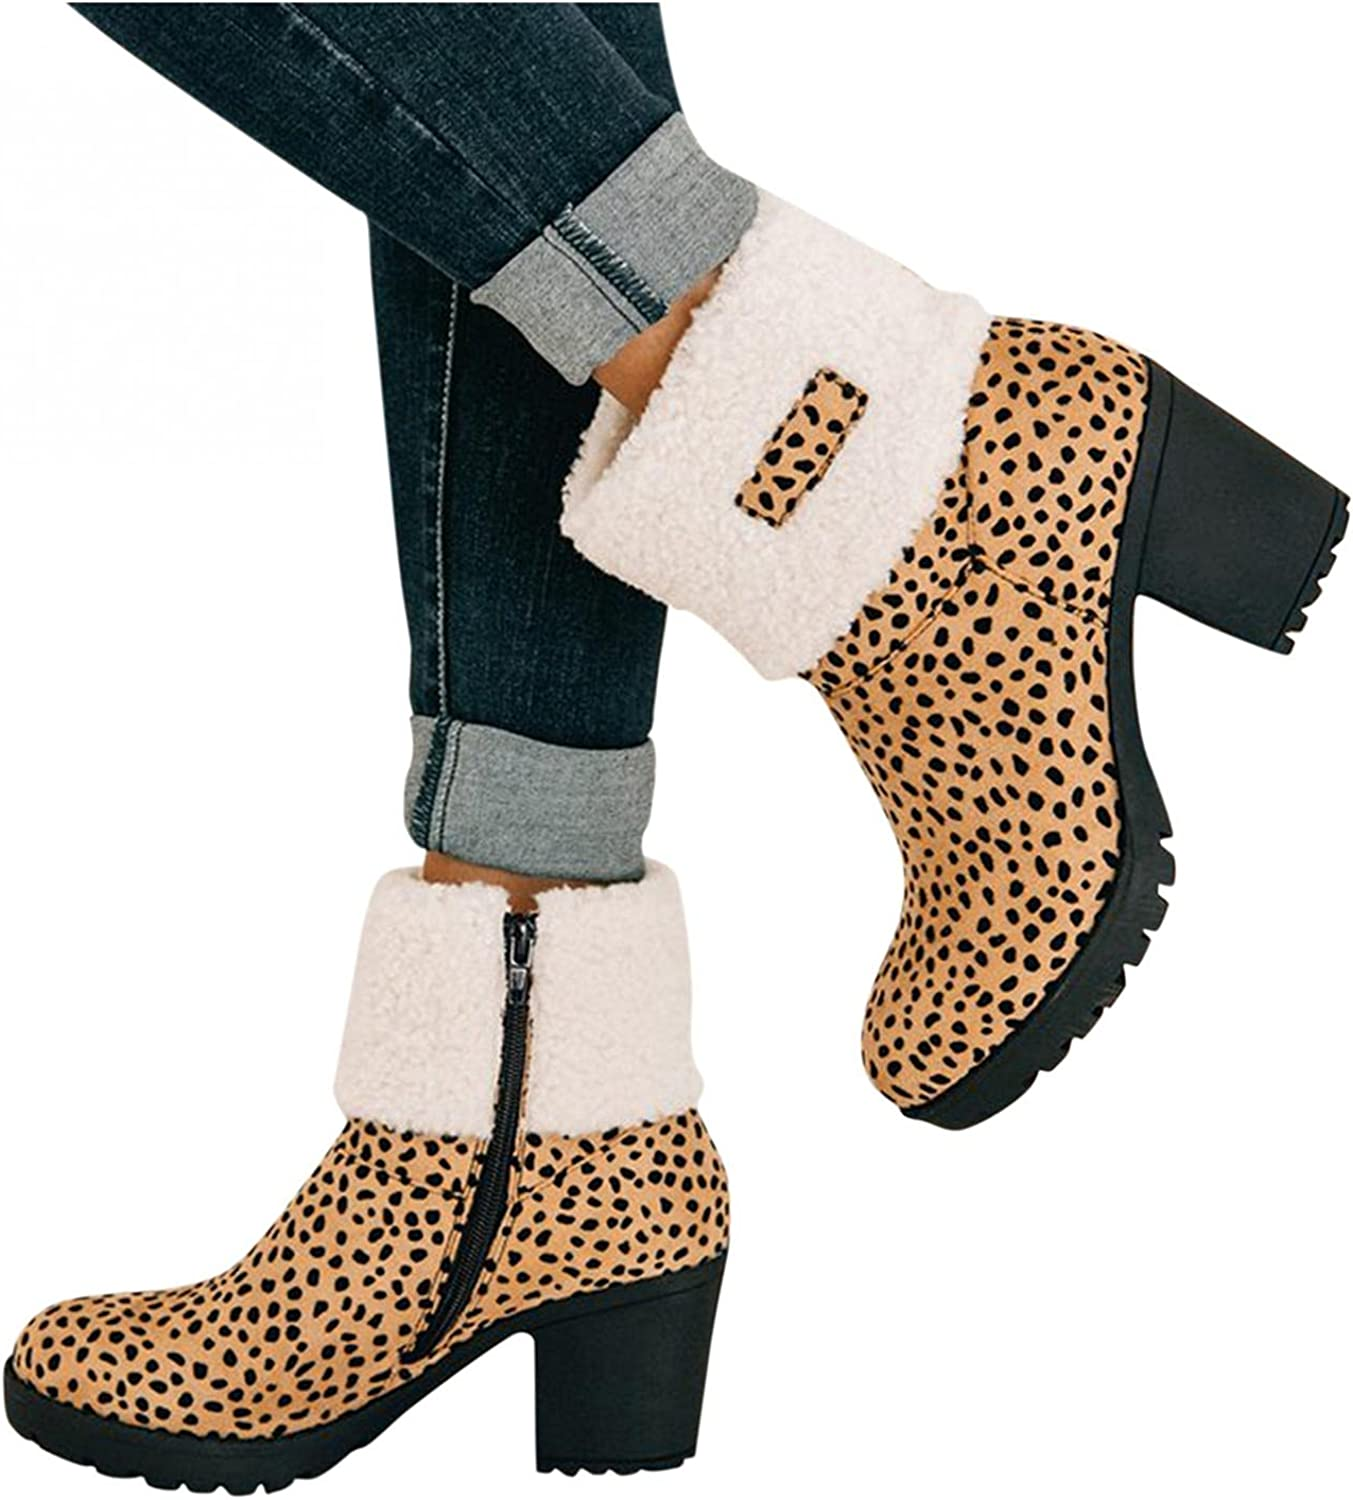 Hbeylia Dress Platform Ankle Booties For Women Ladies Fashion Dressy Pump Winter Snow Boots With Flip Fleece Lining Casual Anti Skid Chunky Block High Heels Mid Calf Short Dress Boots With Side Zipper